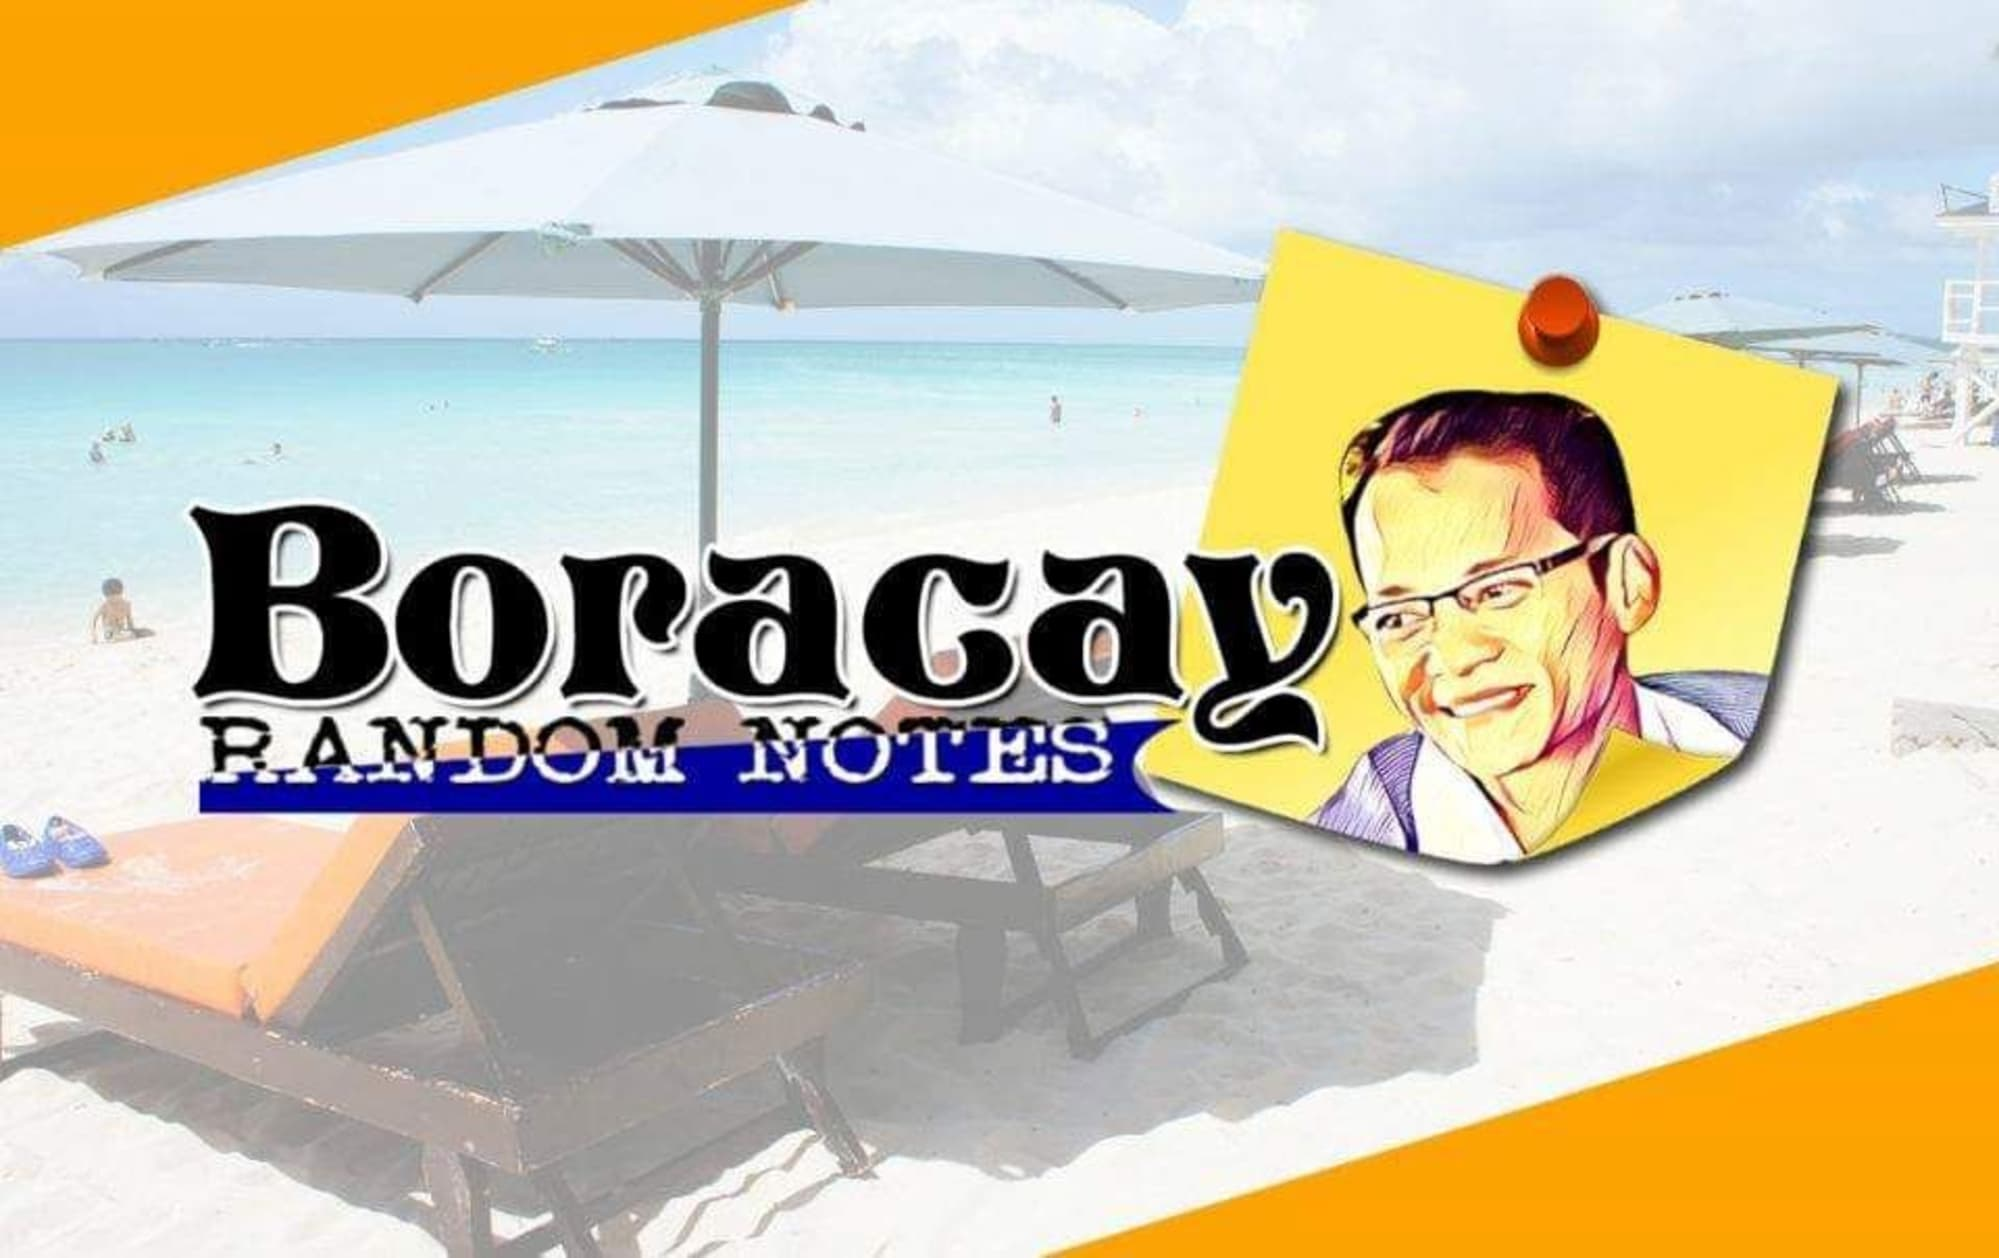 Traffic (mis)management on Boracay